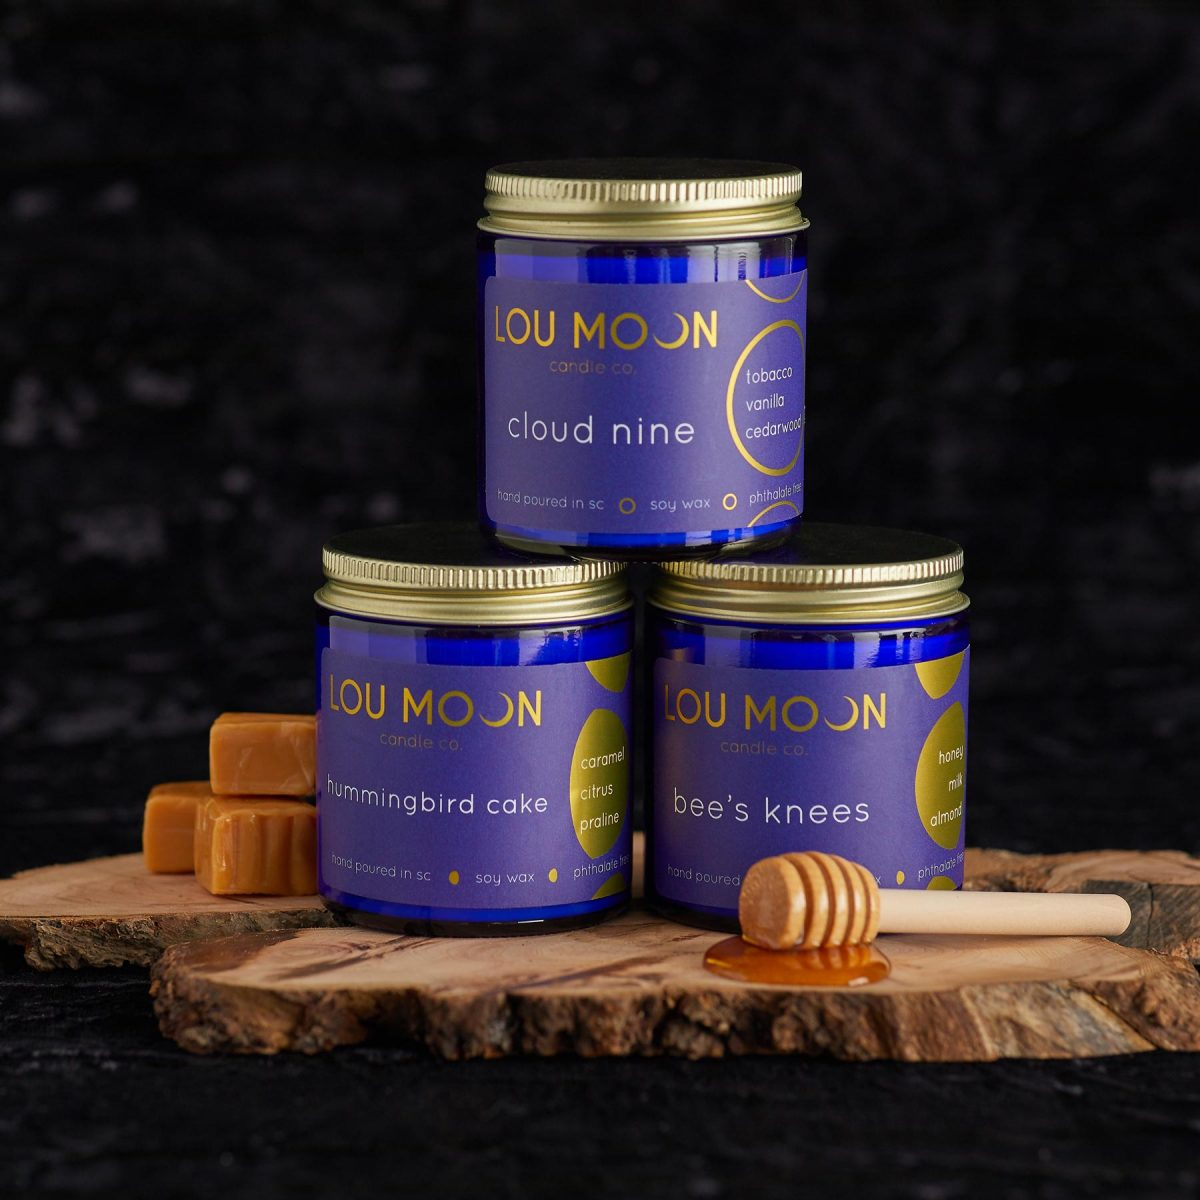 Lifestyle product photography of Lou Candles